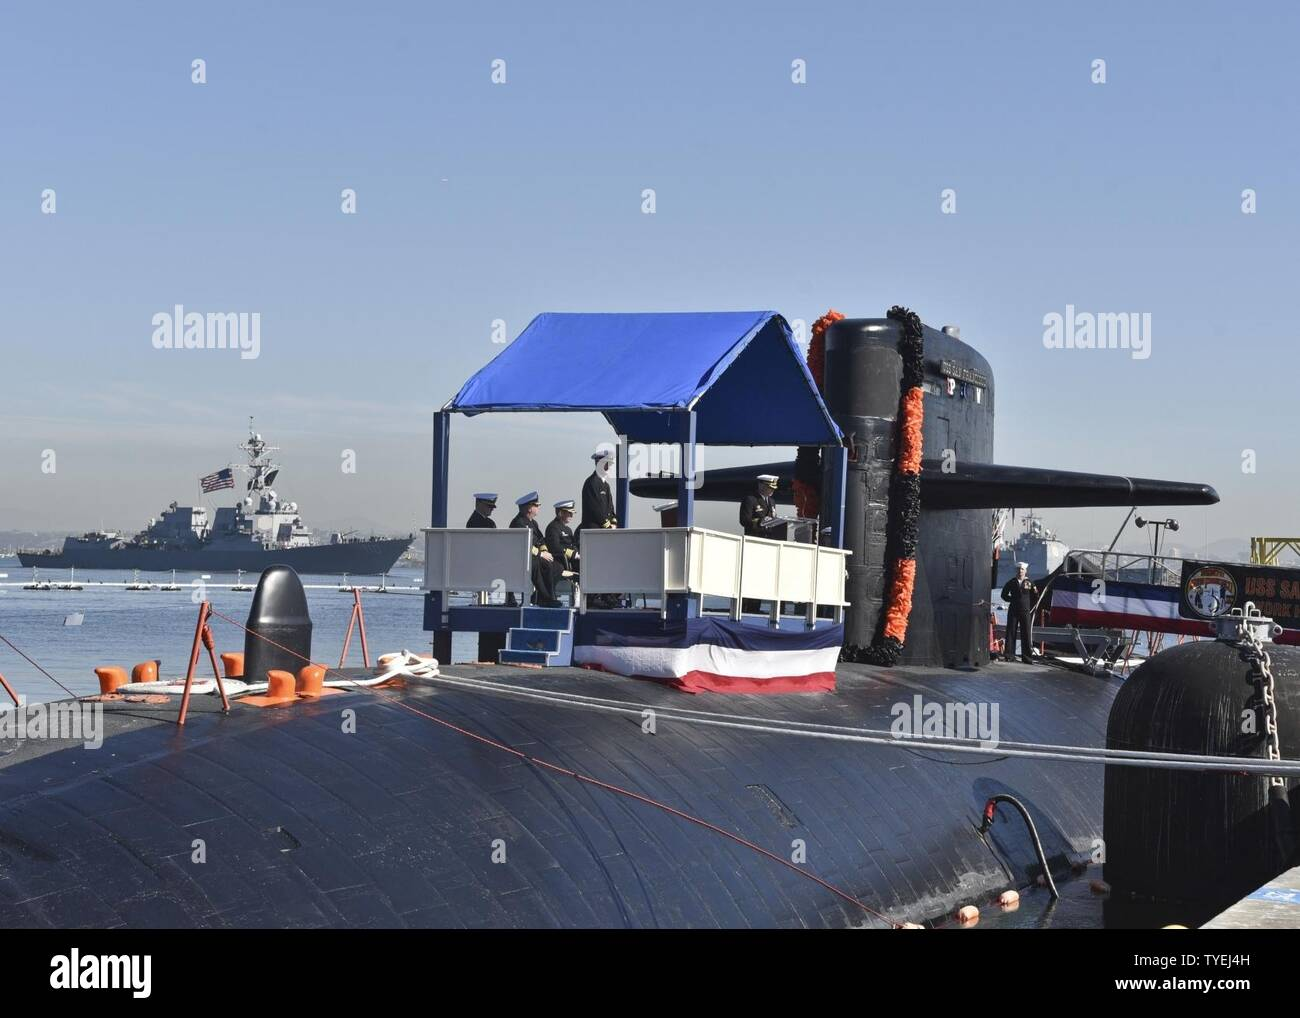 SAN DIEGO (Nov. 4, 2016) Cmdr. Jeff Juergens, commanding officer of the Los Angles-class fast attack submarine USS San Francisco (SSN 711), delivers remarks during a change of command and farewell ceremony on Naval Base Point Loma. The San Francisco is scheduled to shift homeports to Norfolk, Va. to begin a two year conversion process to become a moored training ship at the Nuclear Power Training Unit in Charleston, S.C. - Stock Image